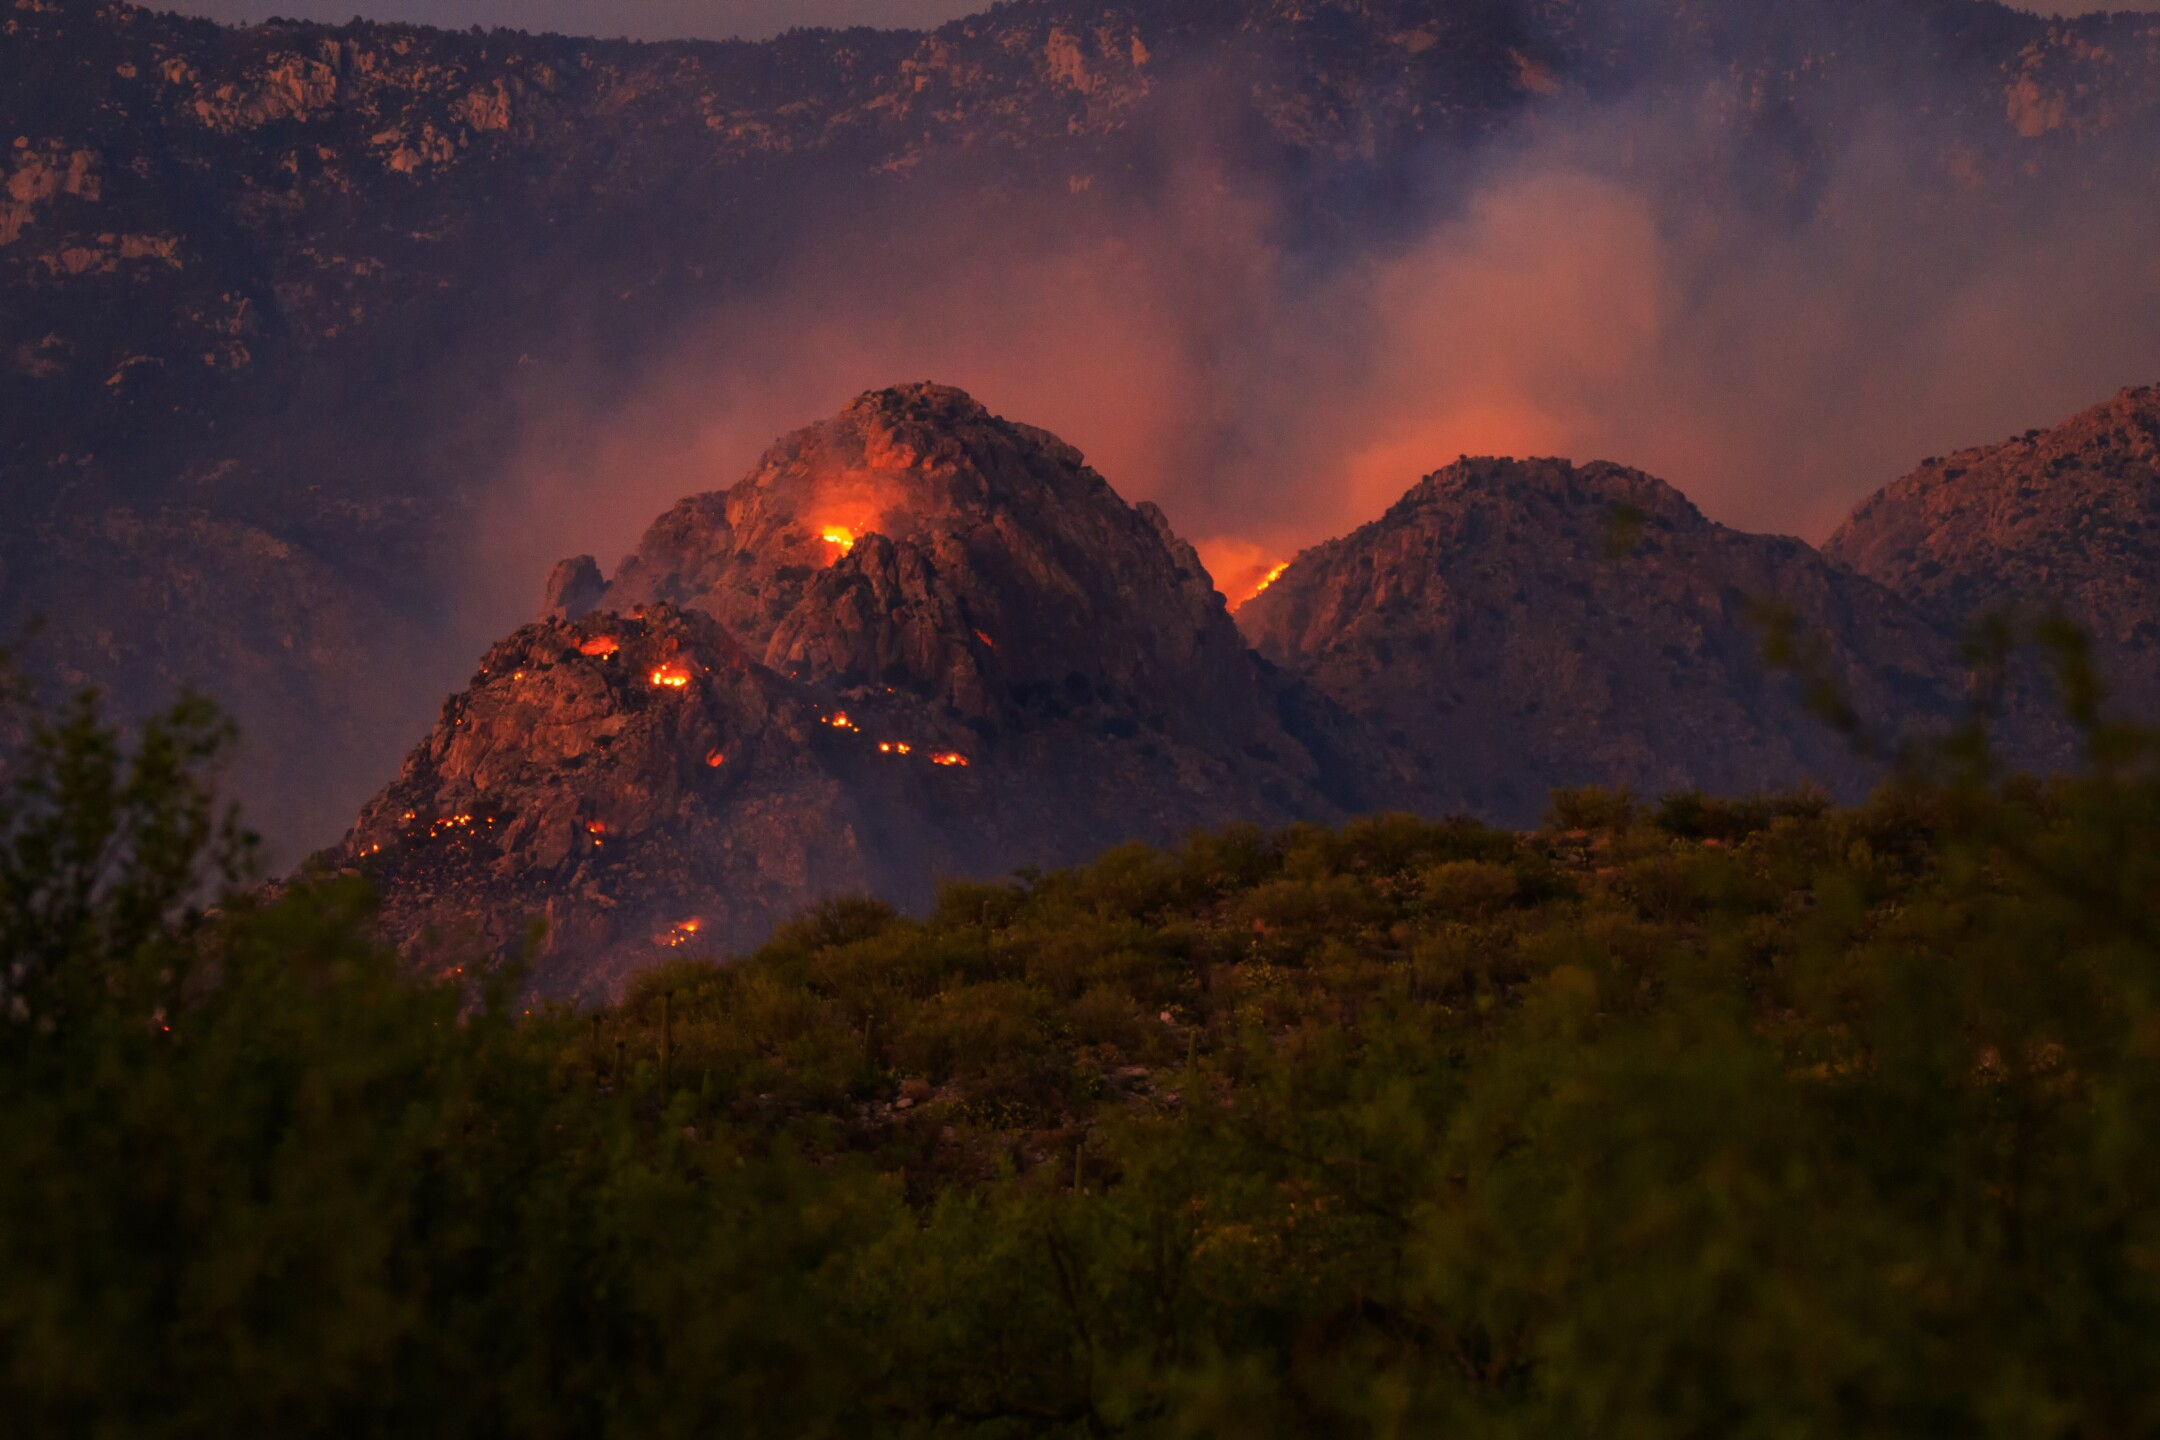 The Bighorn fire in the Catalina Mountains